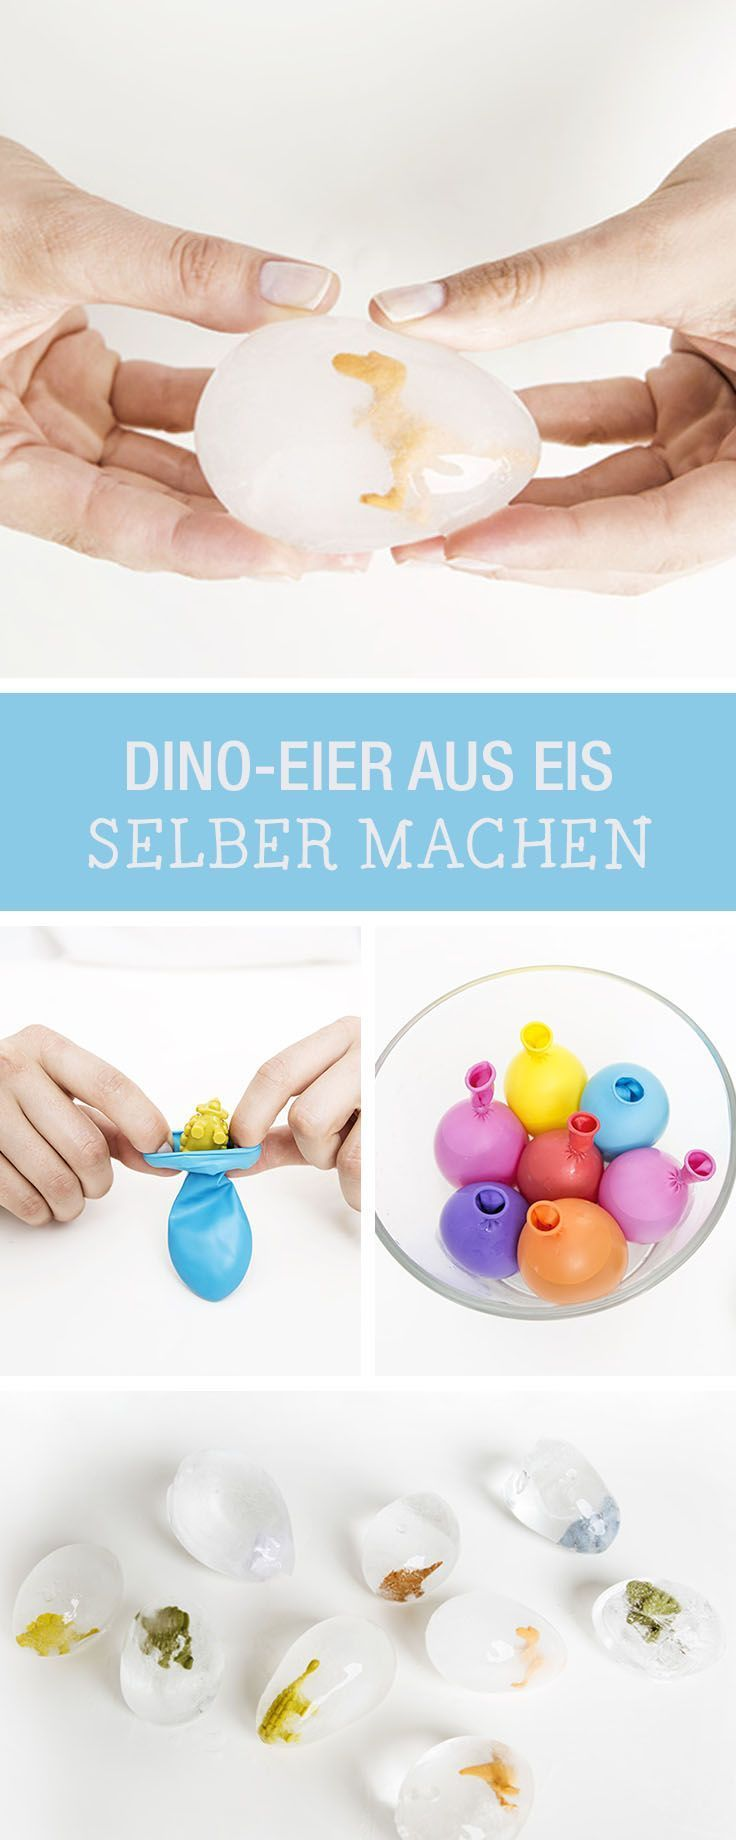 pin von edi nordquist auf dinosaur party pinterest dino ei kinder und geburtstag. Black Bedroom Furniture Sets. Home Design Ideas